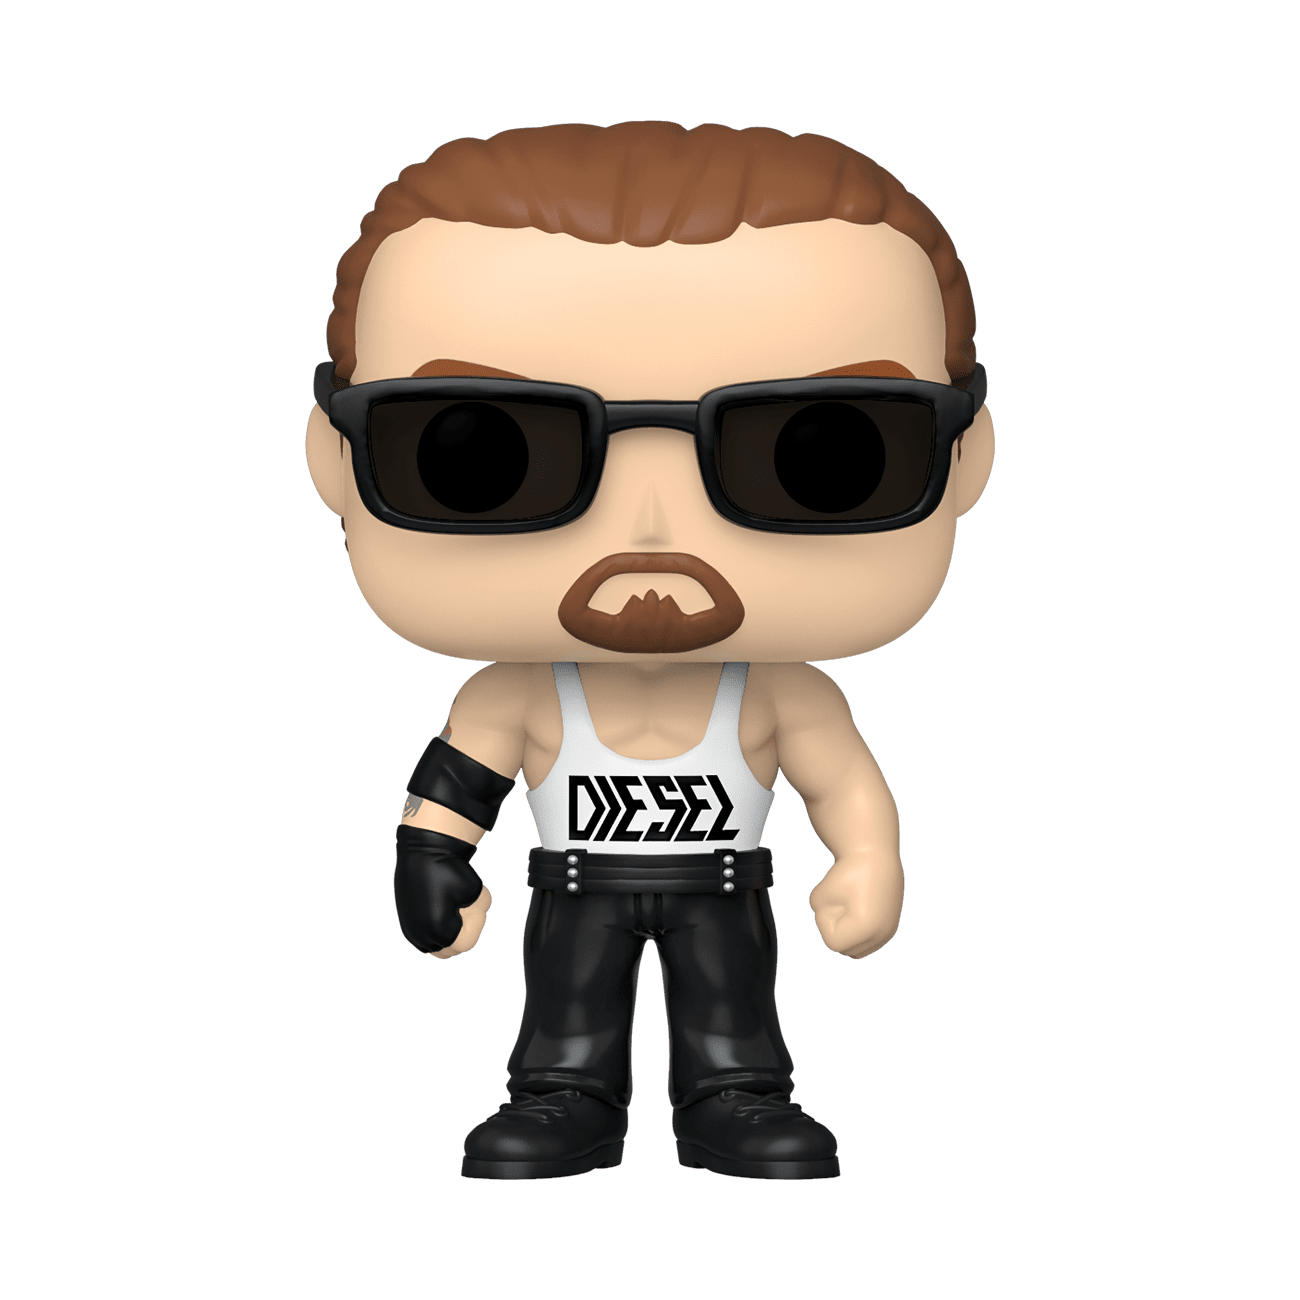 46845a_WWE_Diesel_POP_GLAM-WEB-0ee9eebc005bcc7015b7fa907d9b27f2.png